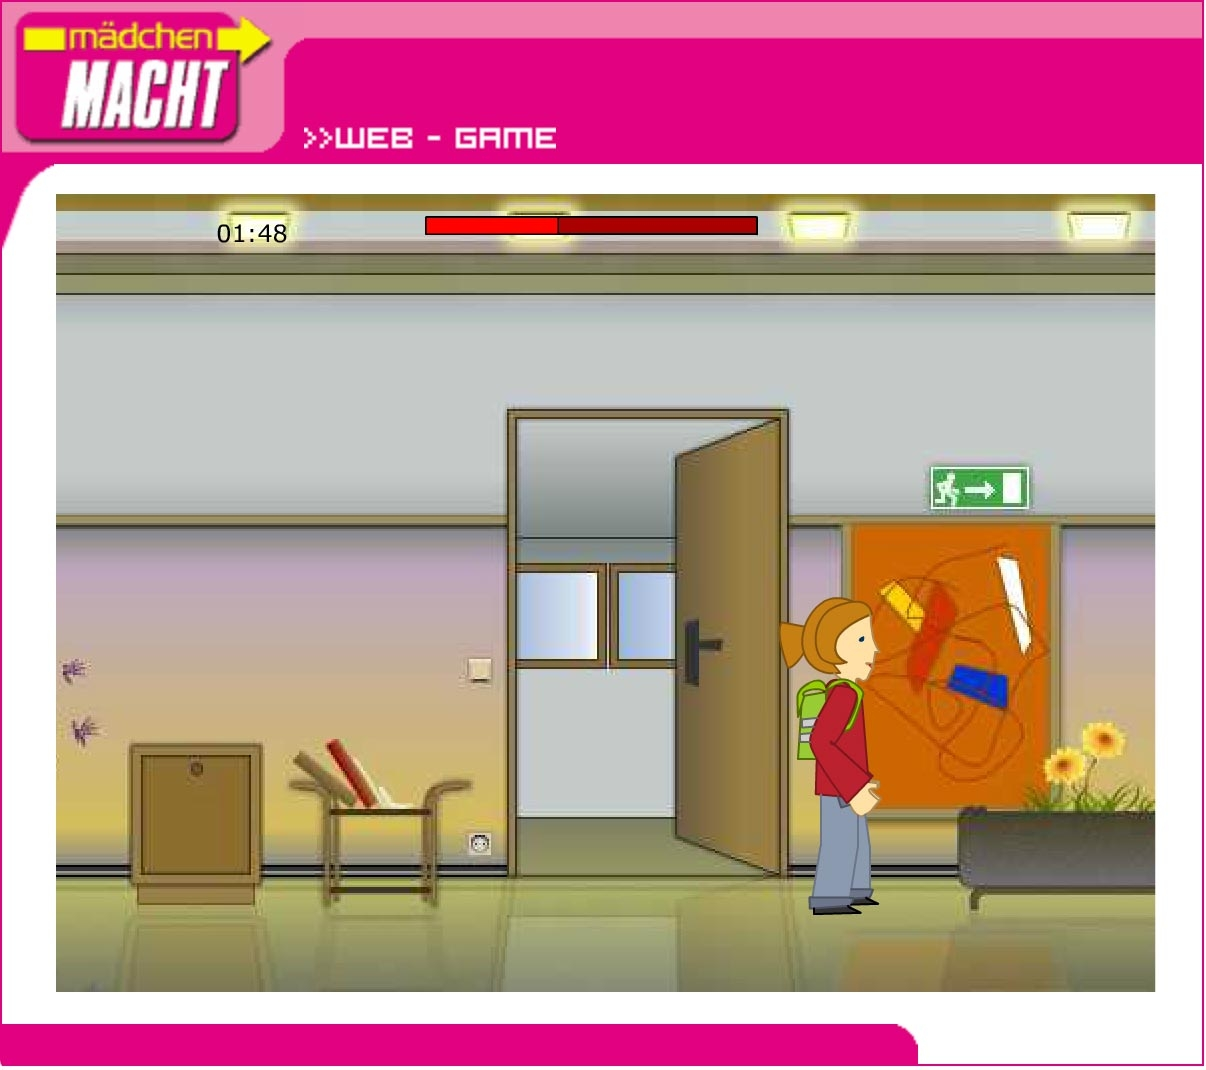 Mädchen macht! | maedchenmacht.at | 2002 | Game (Screen Only 05) © echonet communication